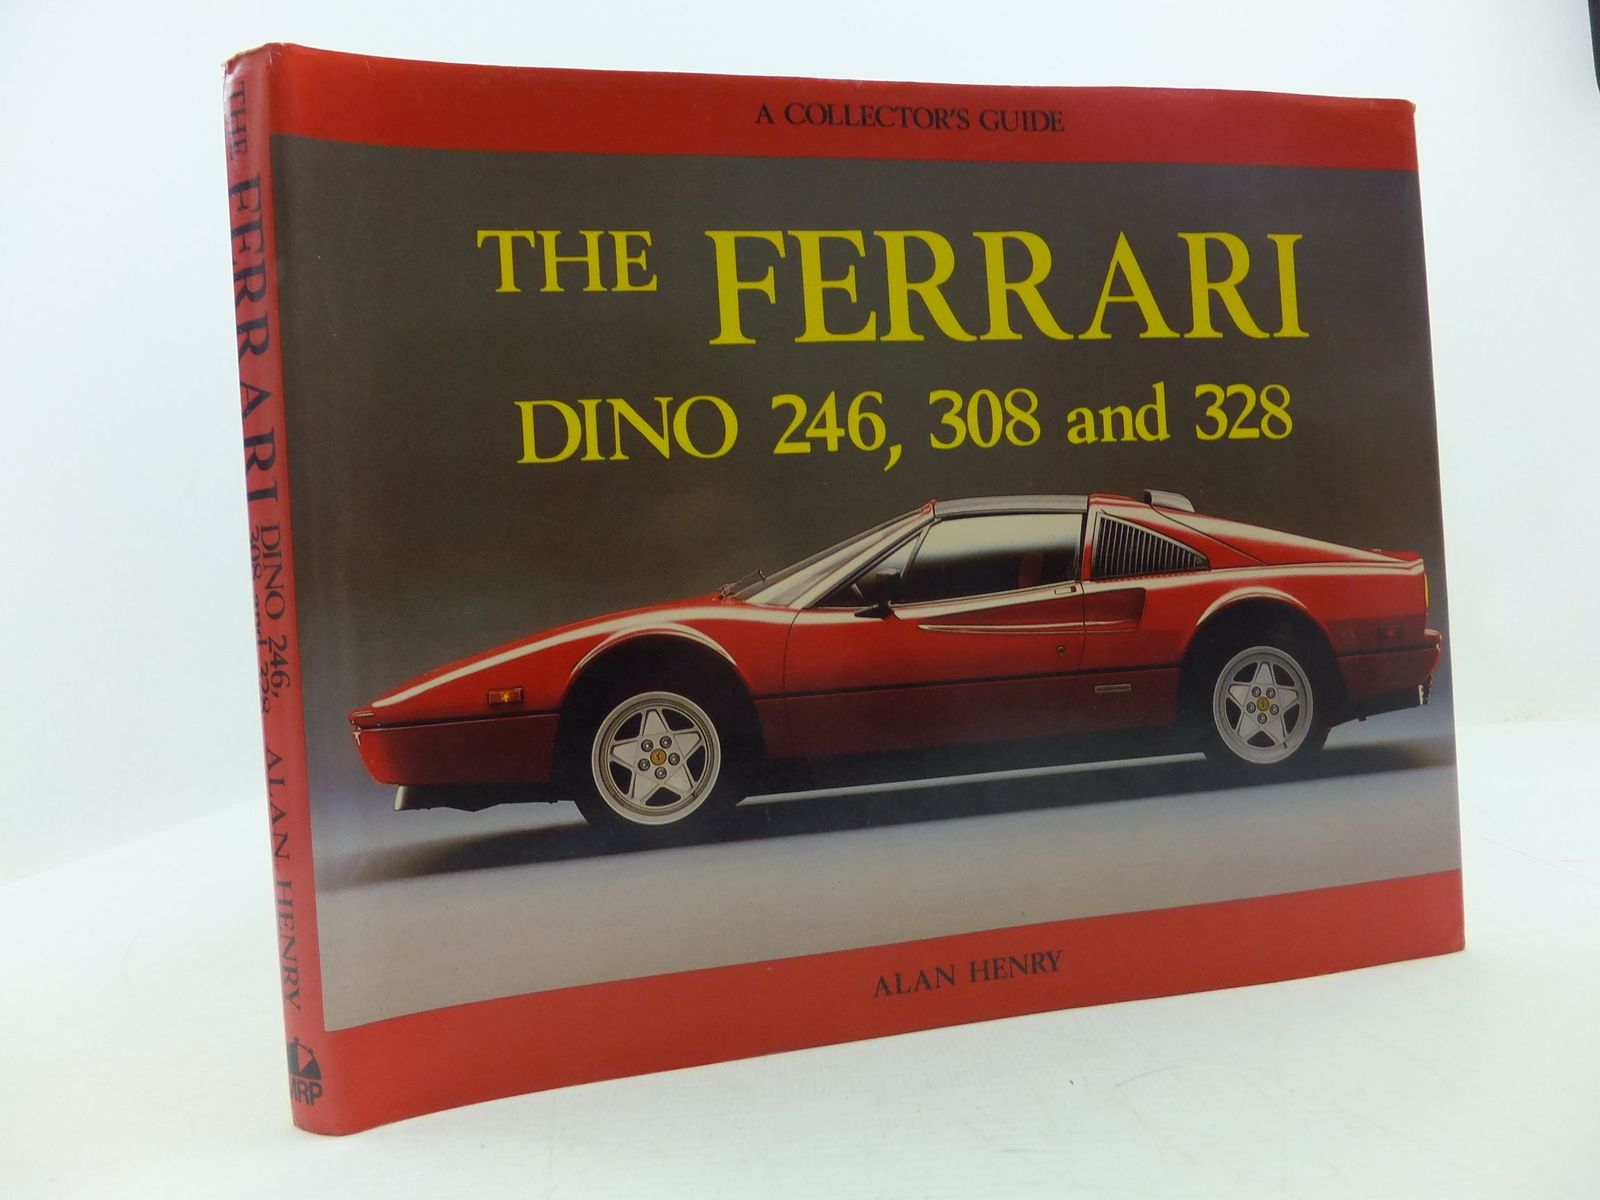 Photo of THE FERRARI DINO 246, 308 AND 328 A COLLECTOR'S GUIDE